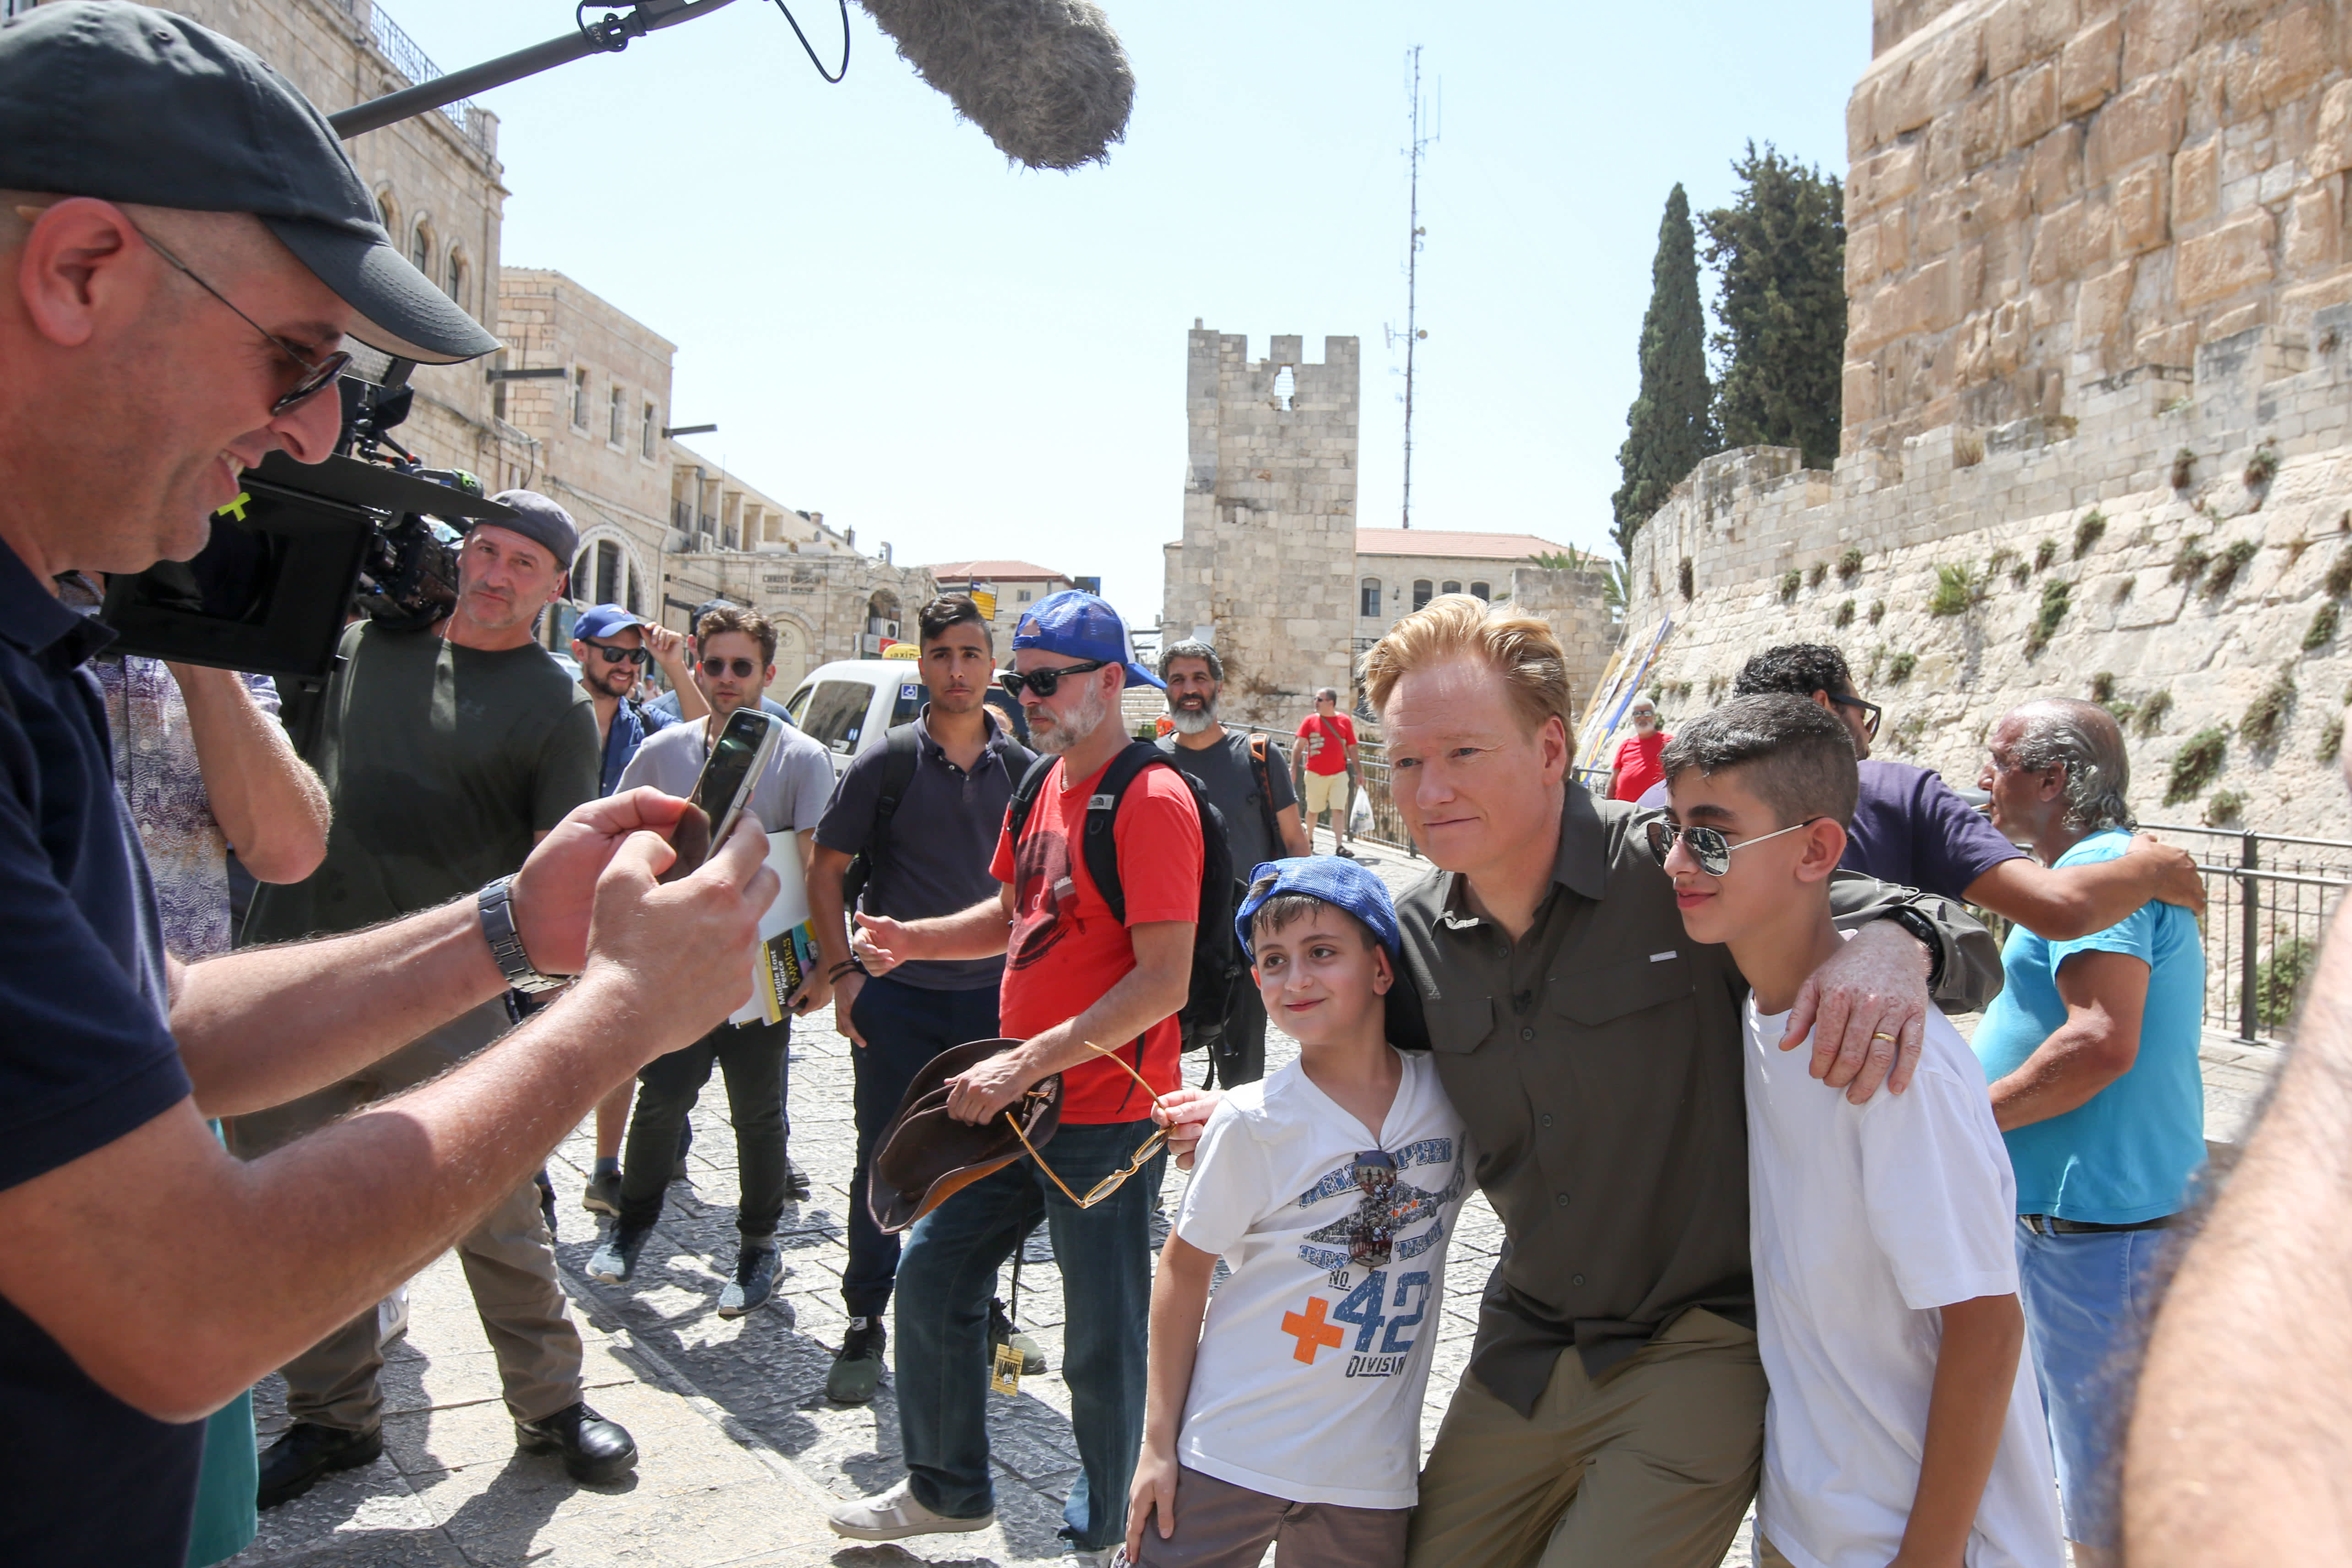 Conan O'Brien poses with young Israelis in Jerusalem (MARC ISRAEL SELLEM/THE JERUSALEM POST)